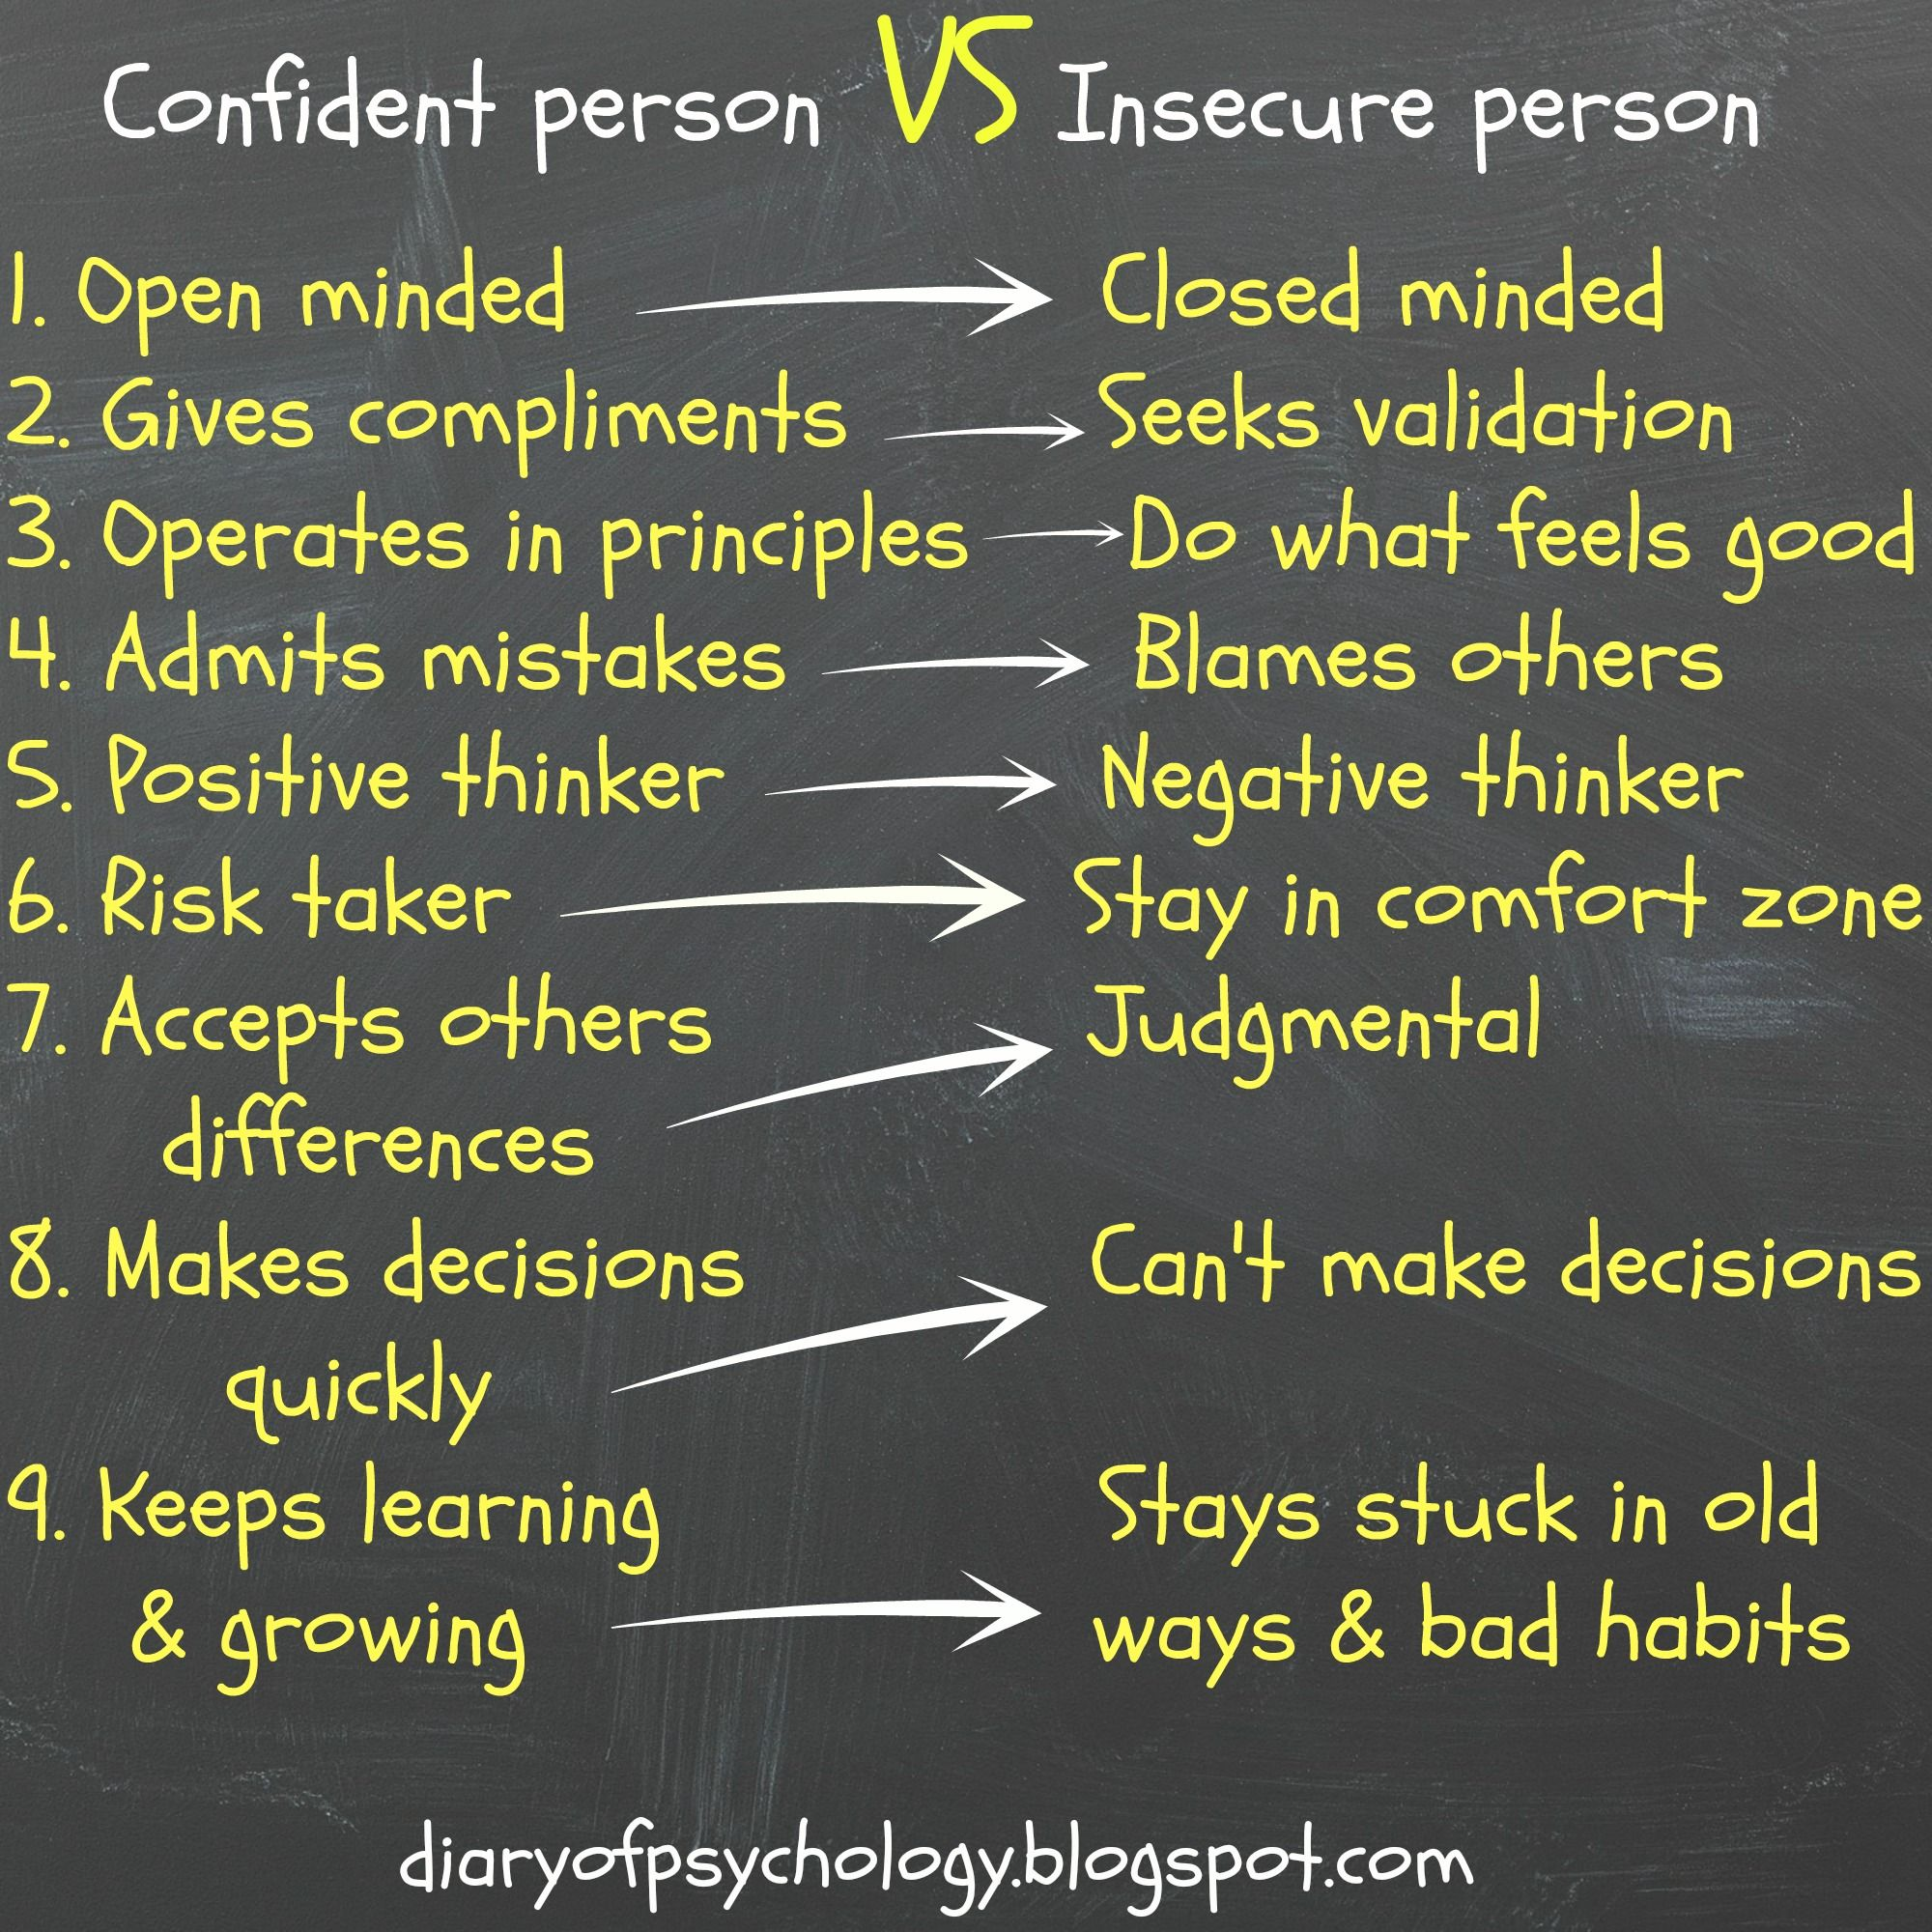 Insecure people characteristics